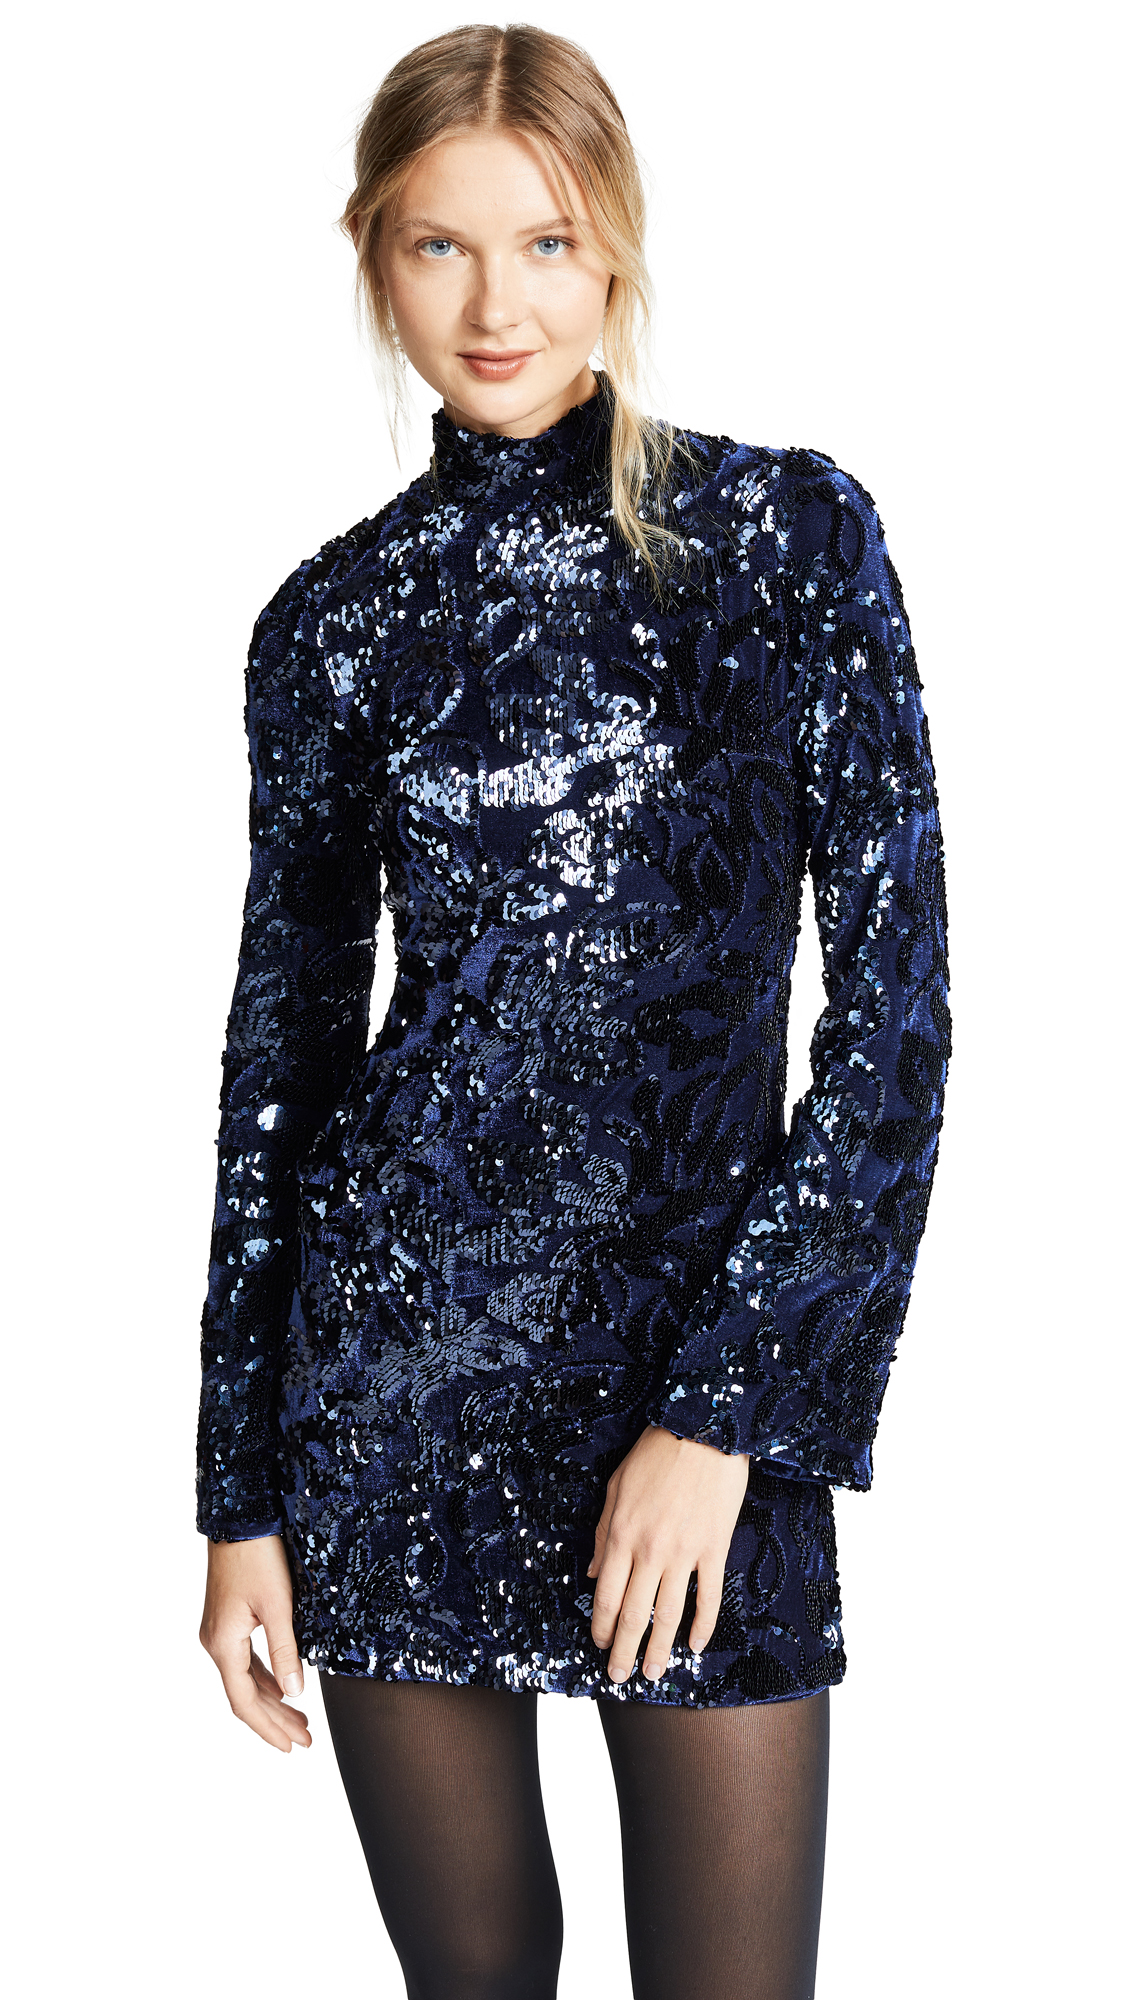 Rhapsody Sequin Turtleneck Mini Dress in Blue